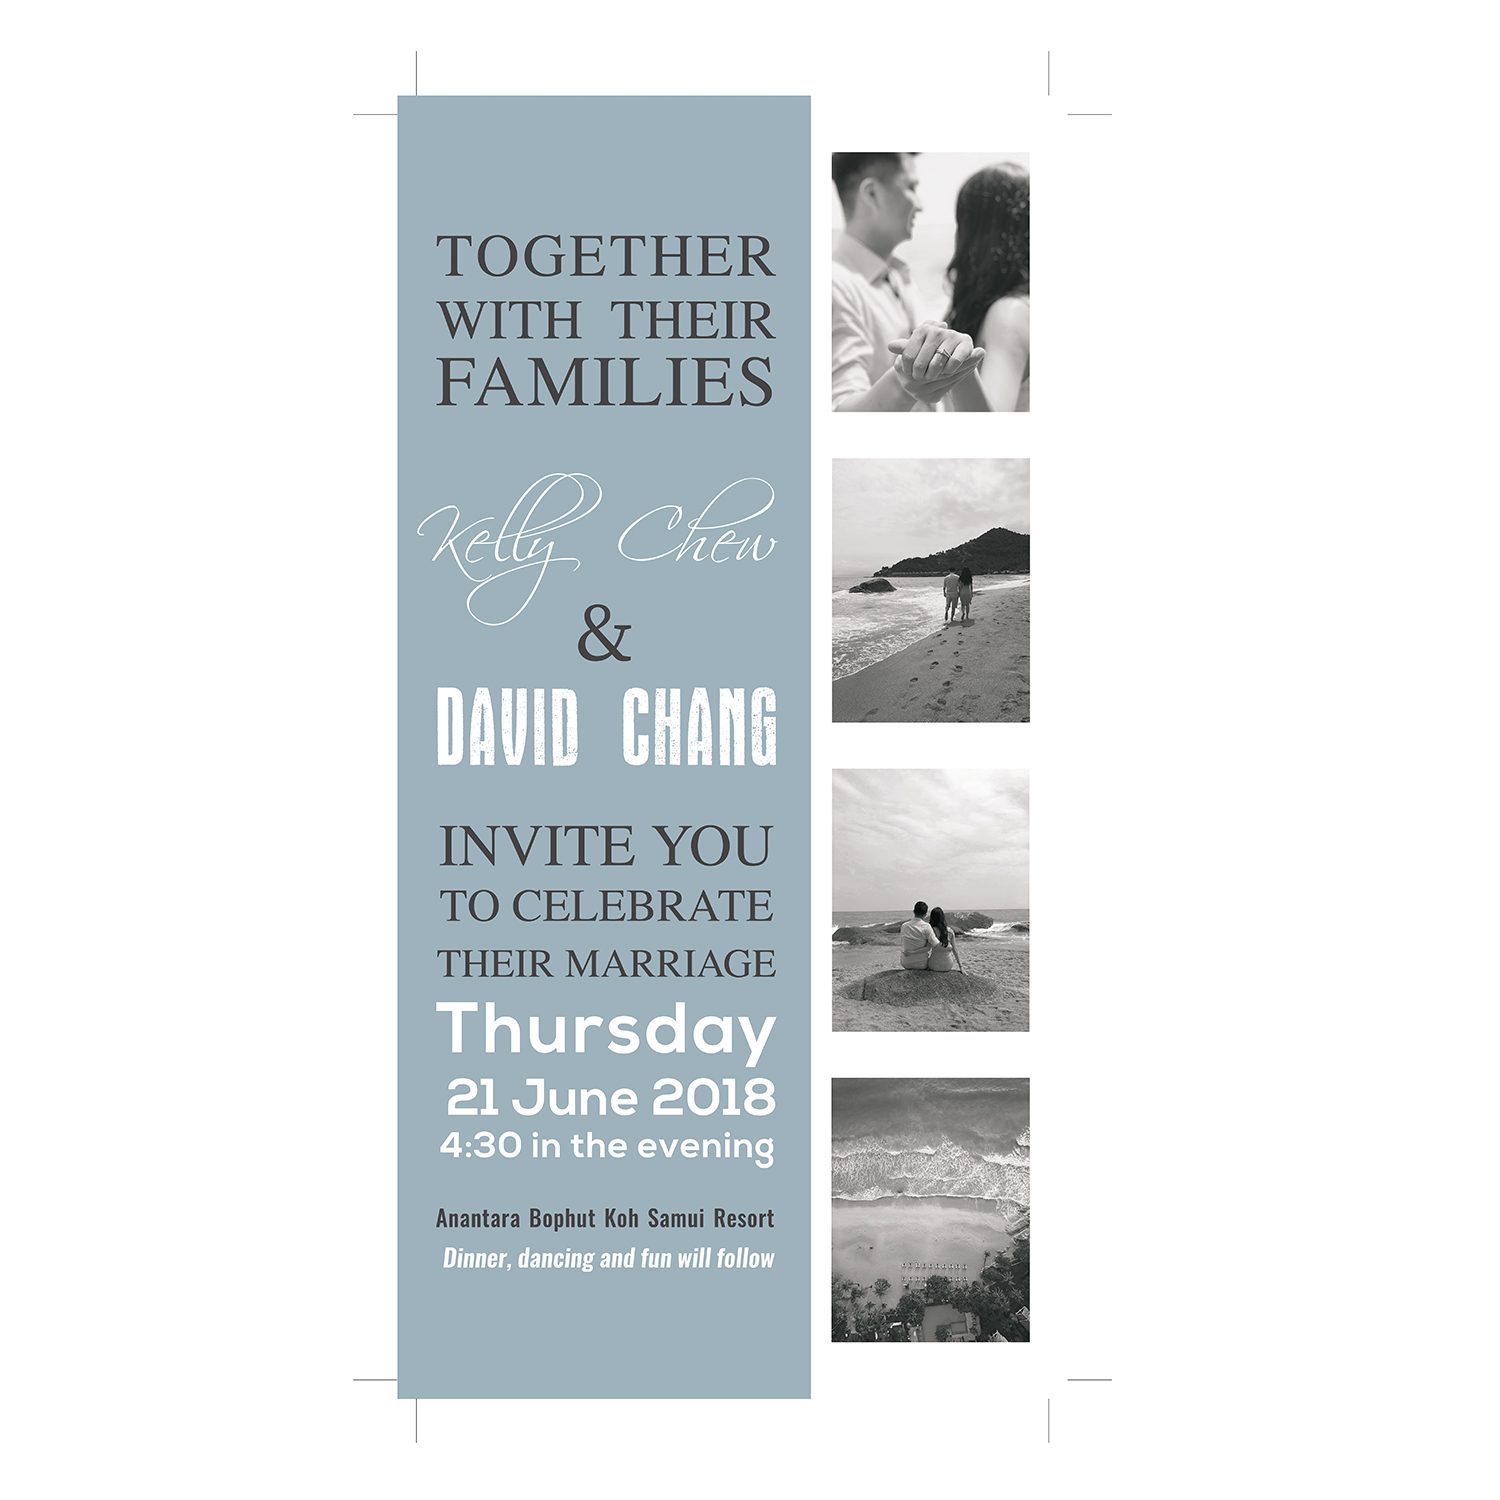 Modern personable wedding invitation design for a company by invitation design by karixen for this project design 18051177 stopboris Image collections